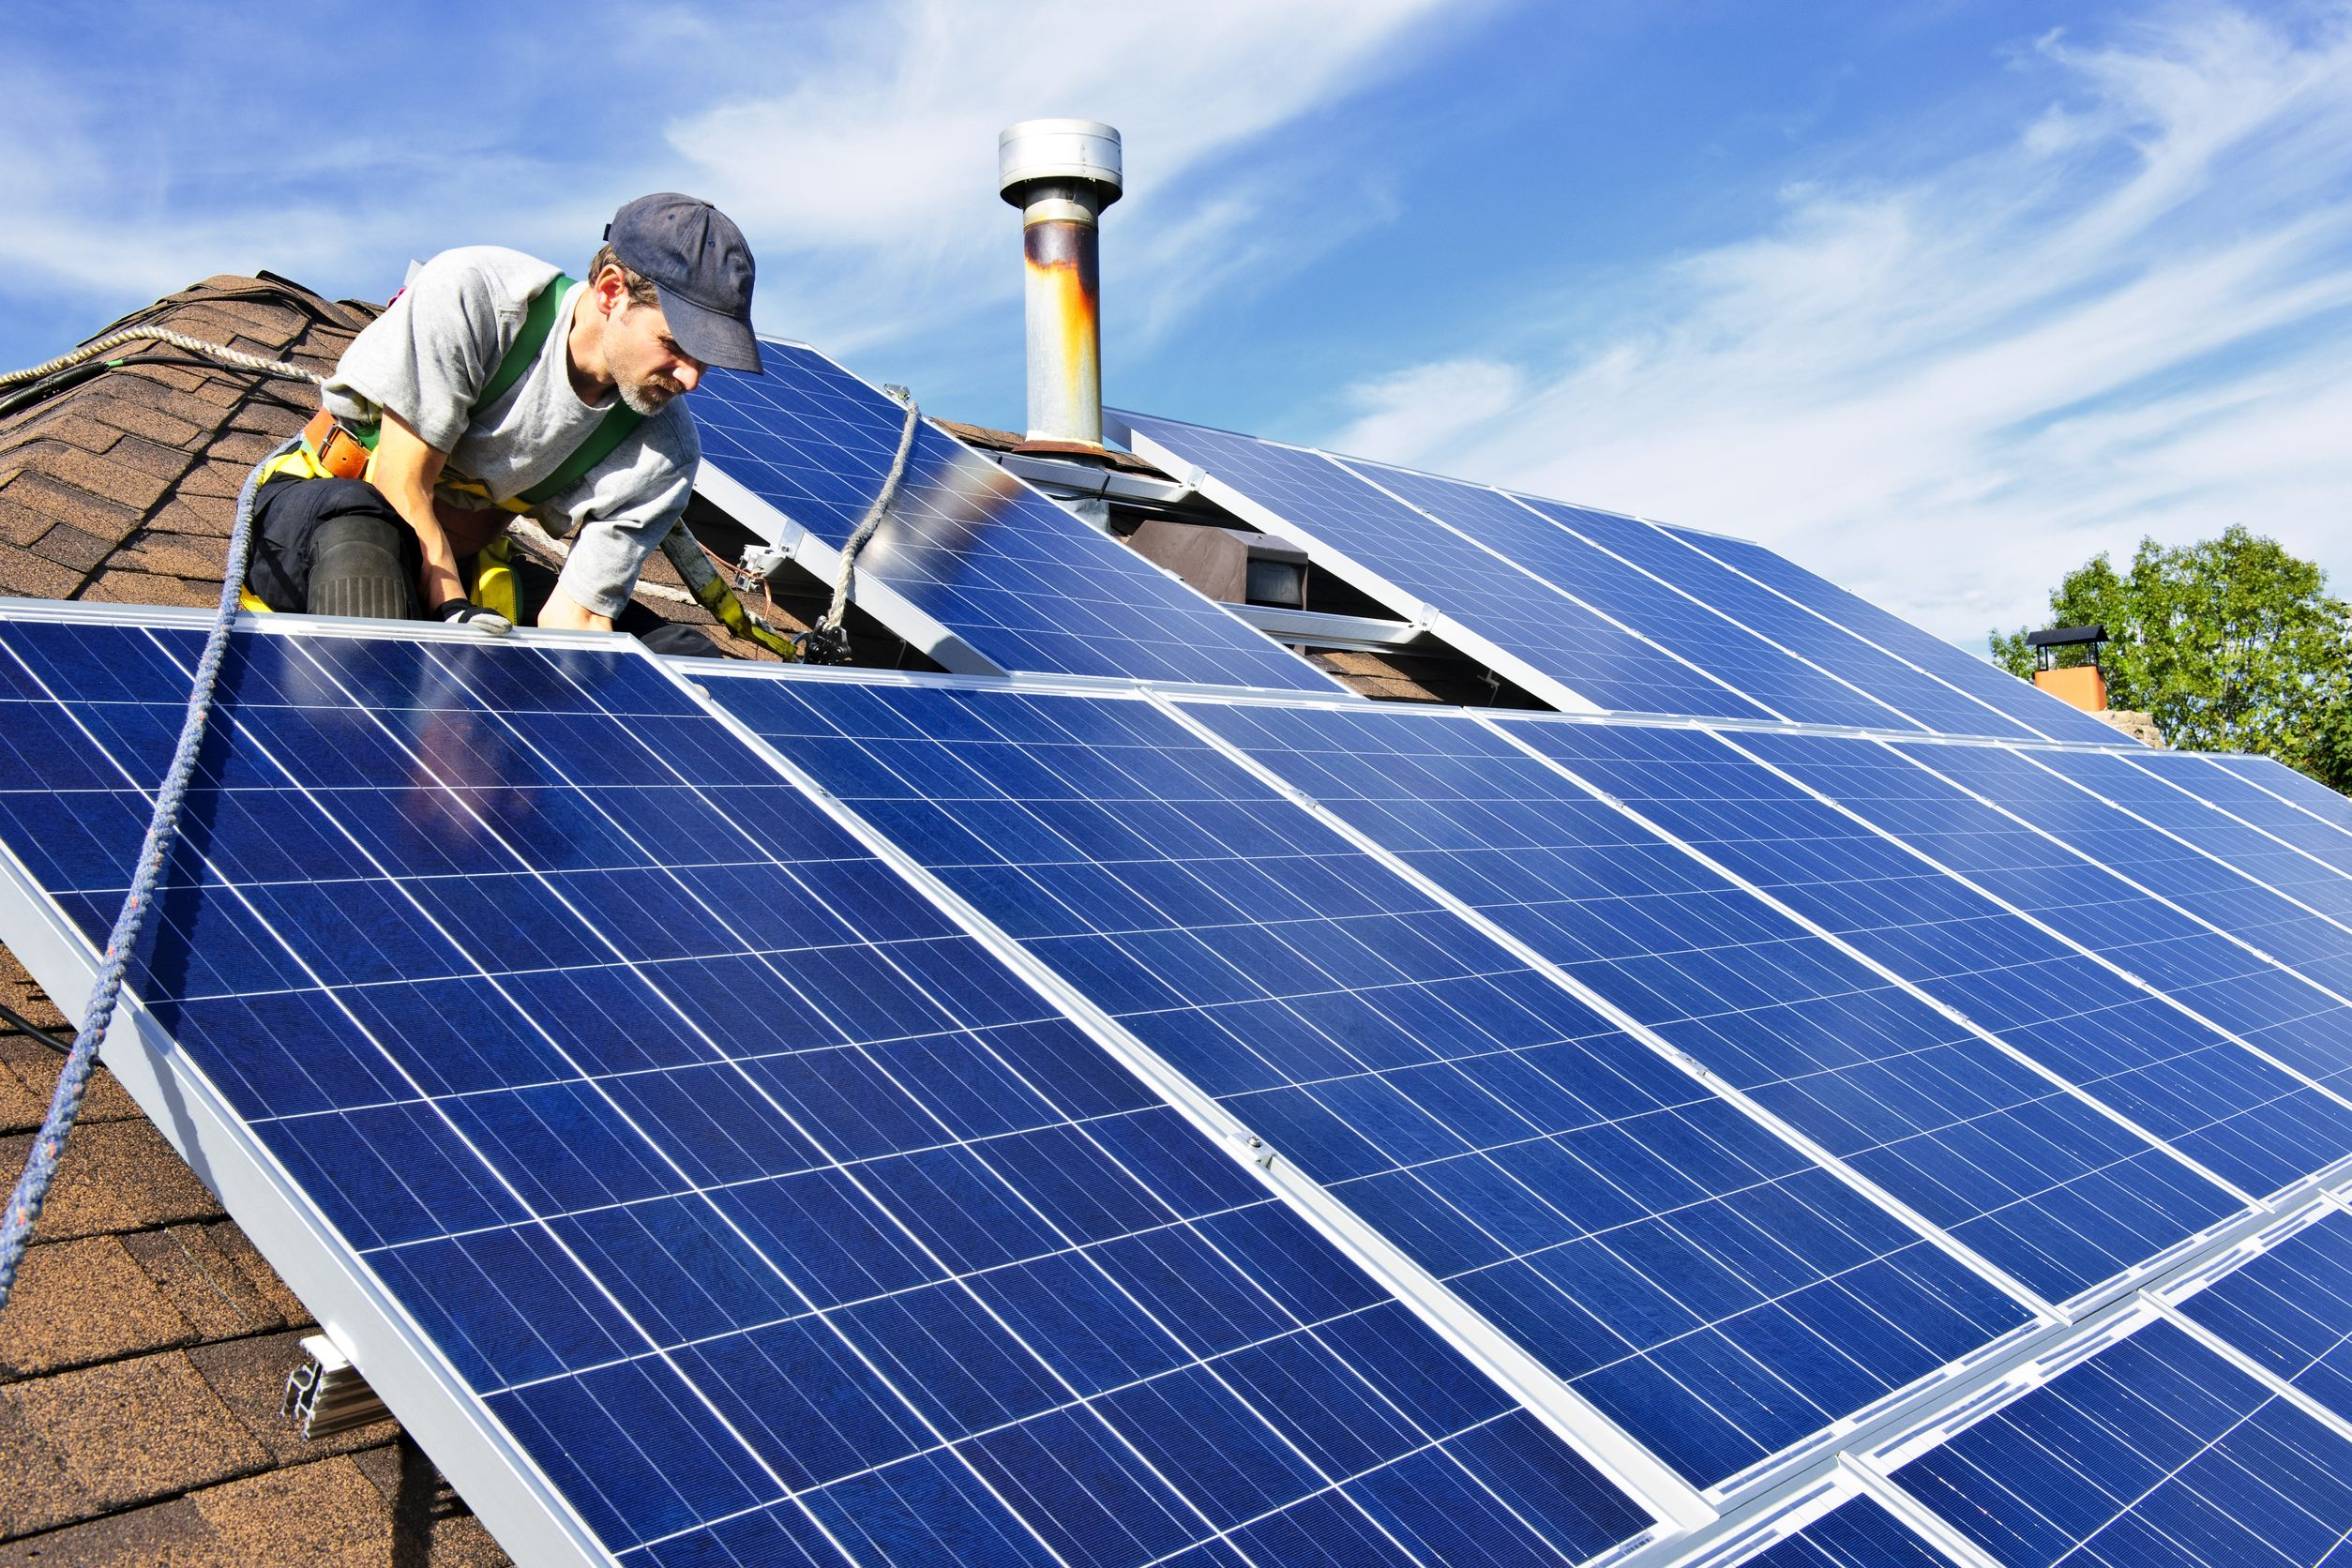 The installation of  small scale renewable energy technologies such as solar panels are essential in driving decentralized energy creation